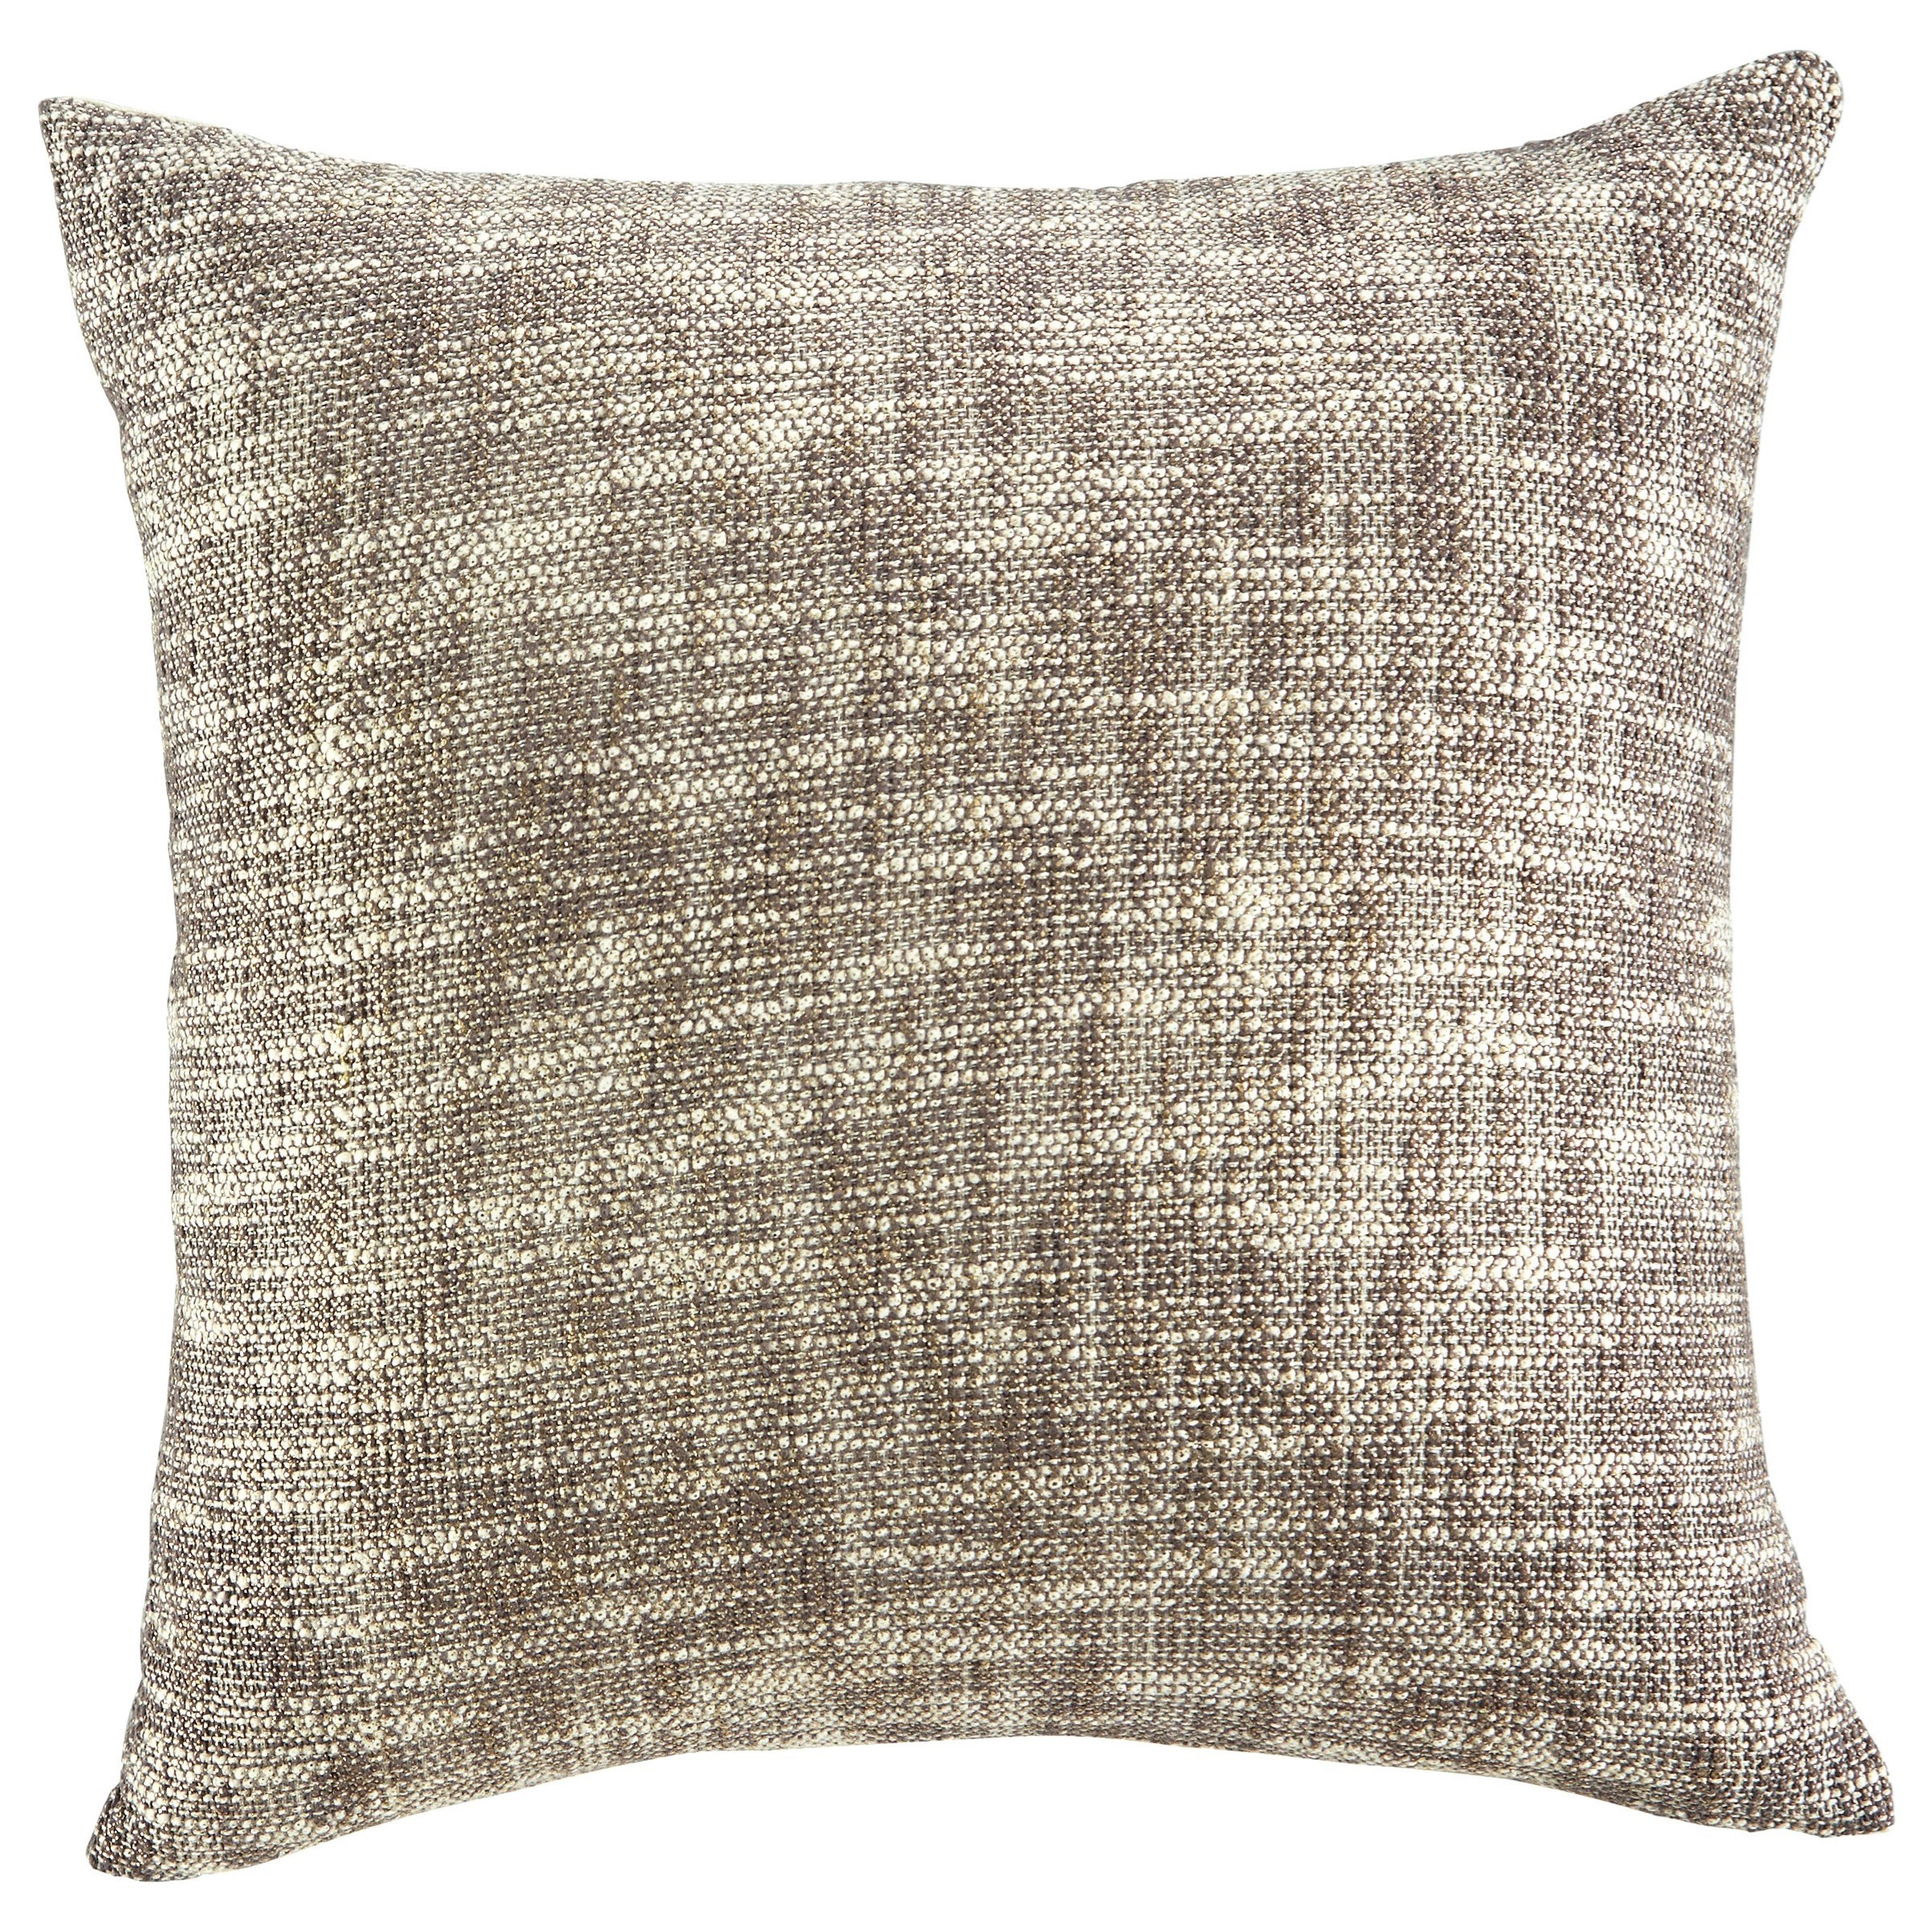 Pillows Hullwood Natural/Taupe Pillow by Ashley (Signature Design) at Johnny Janosik